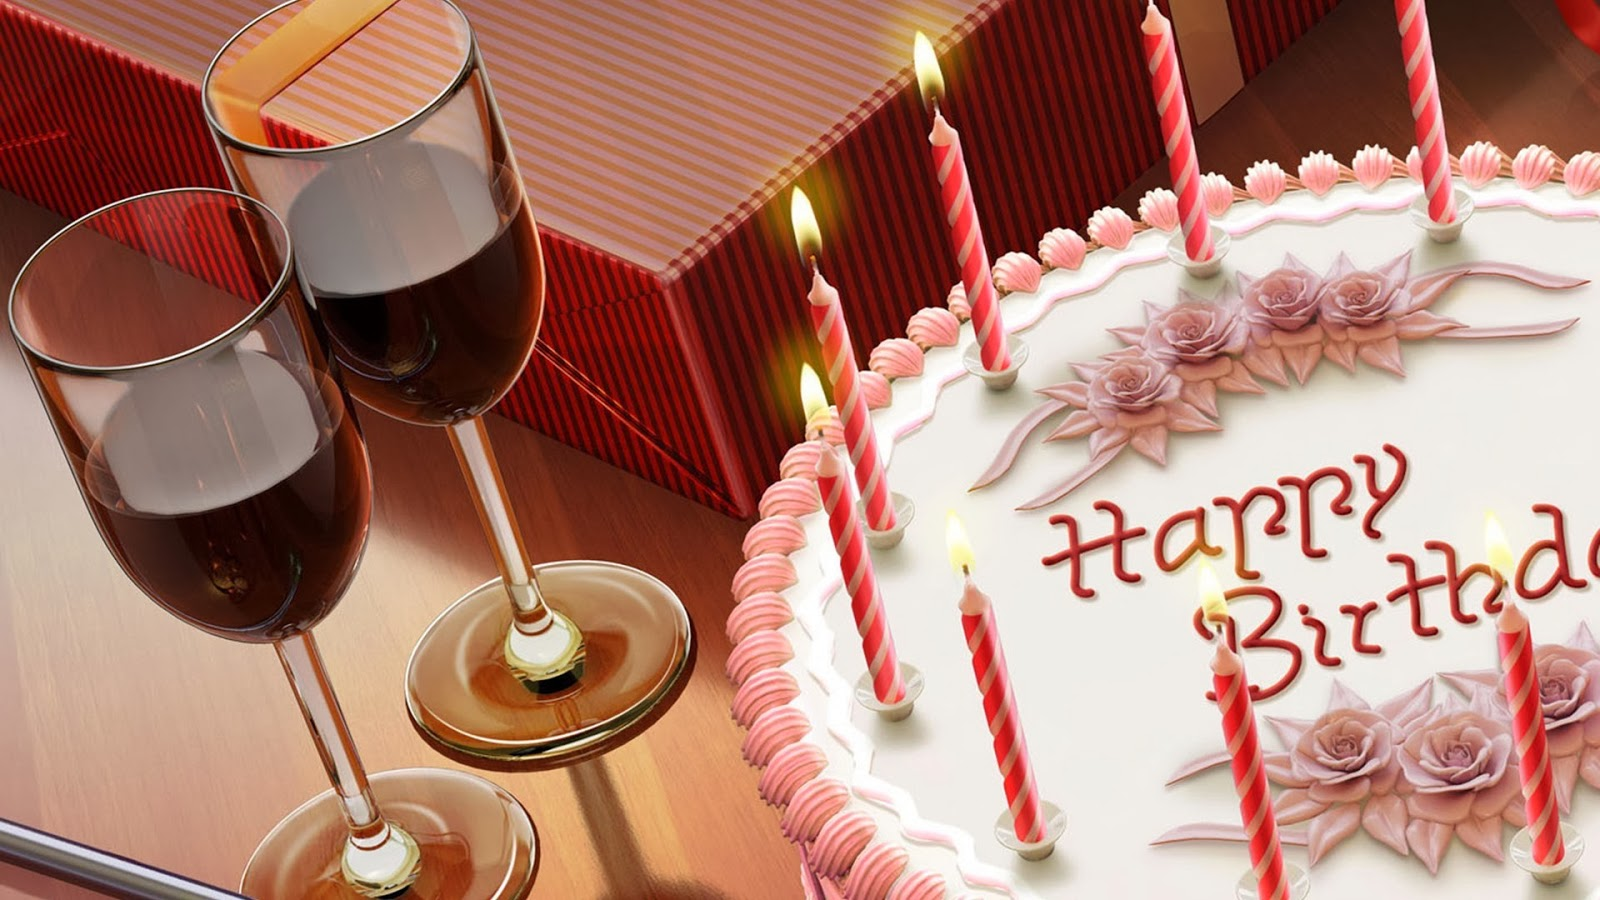 Best Happy Birthday And Download